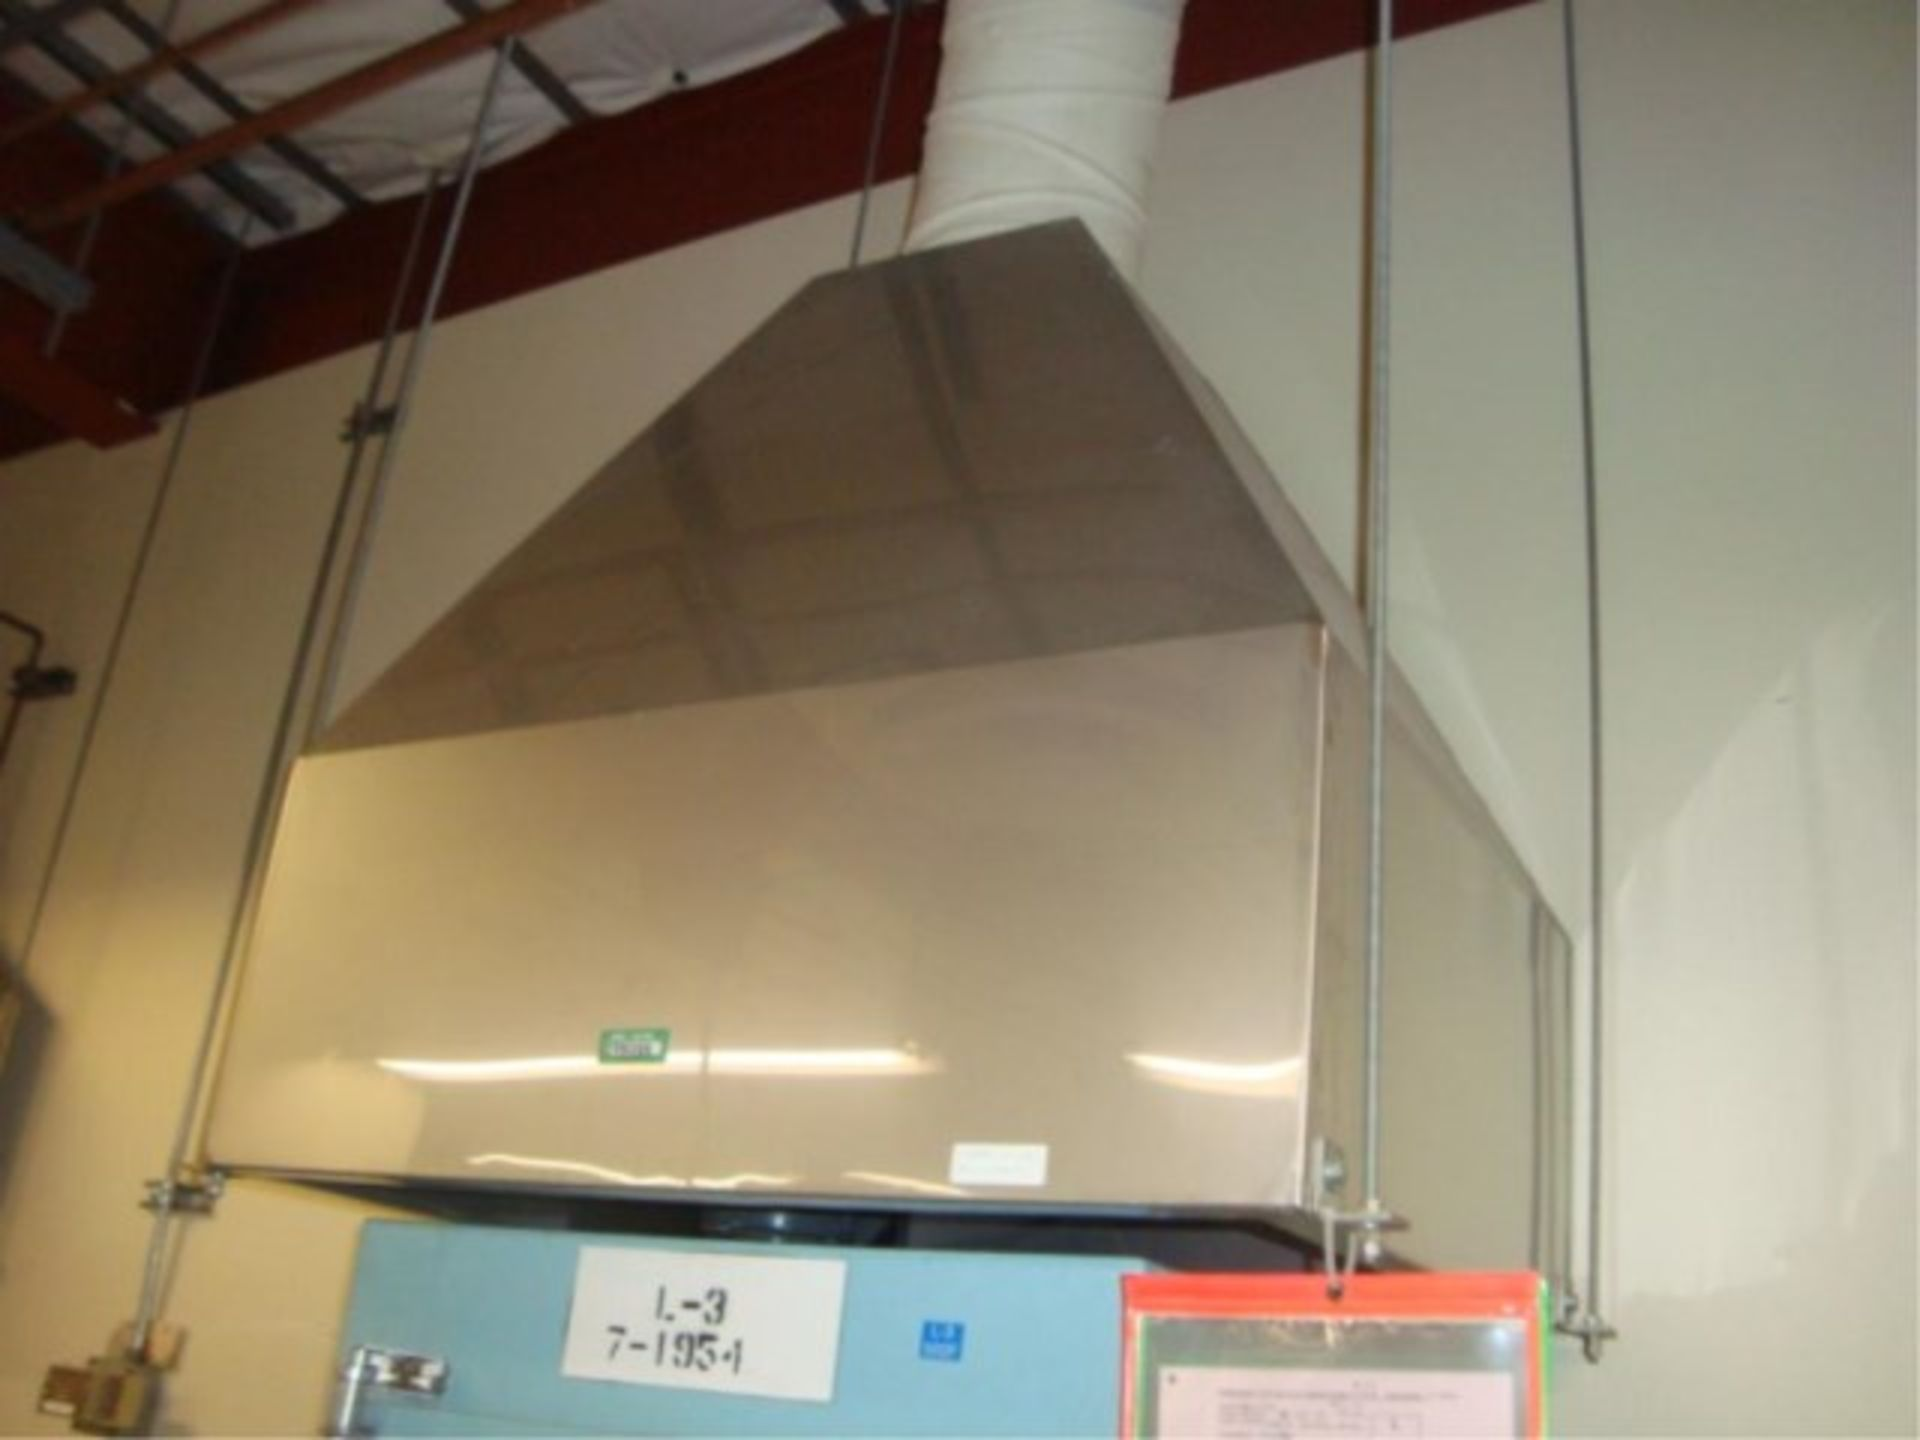 Lot 106 - Stainless Steel Exhaust Hoods